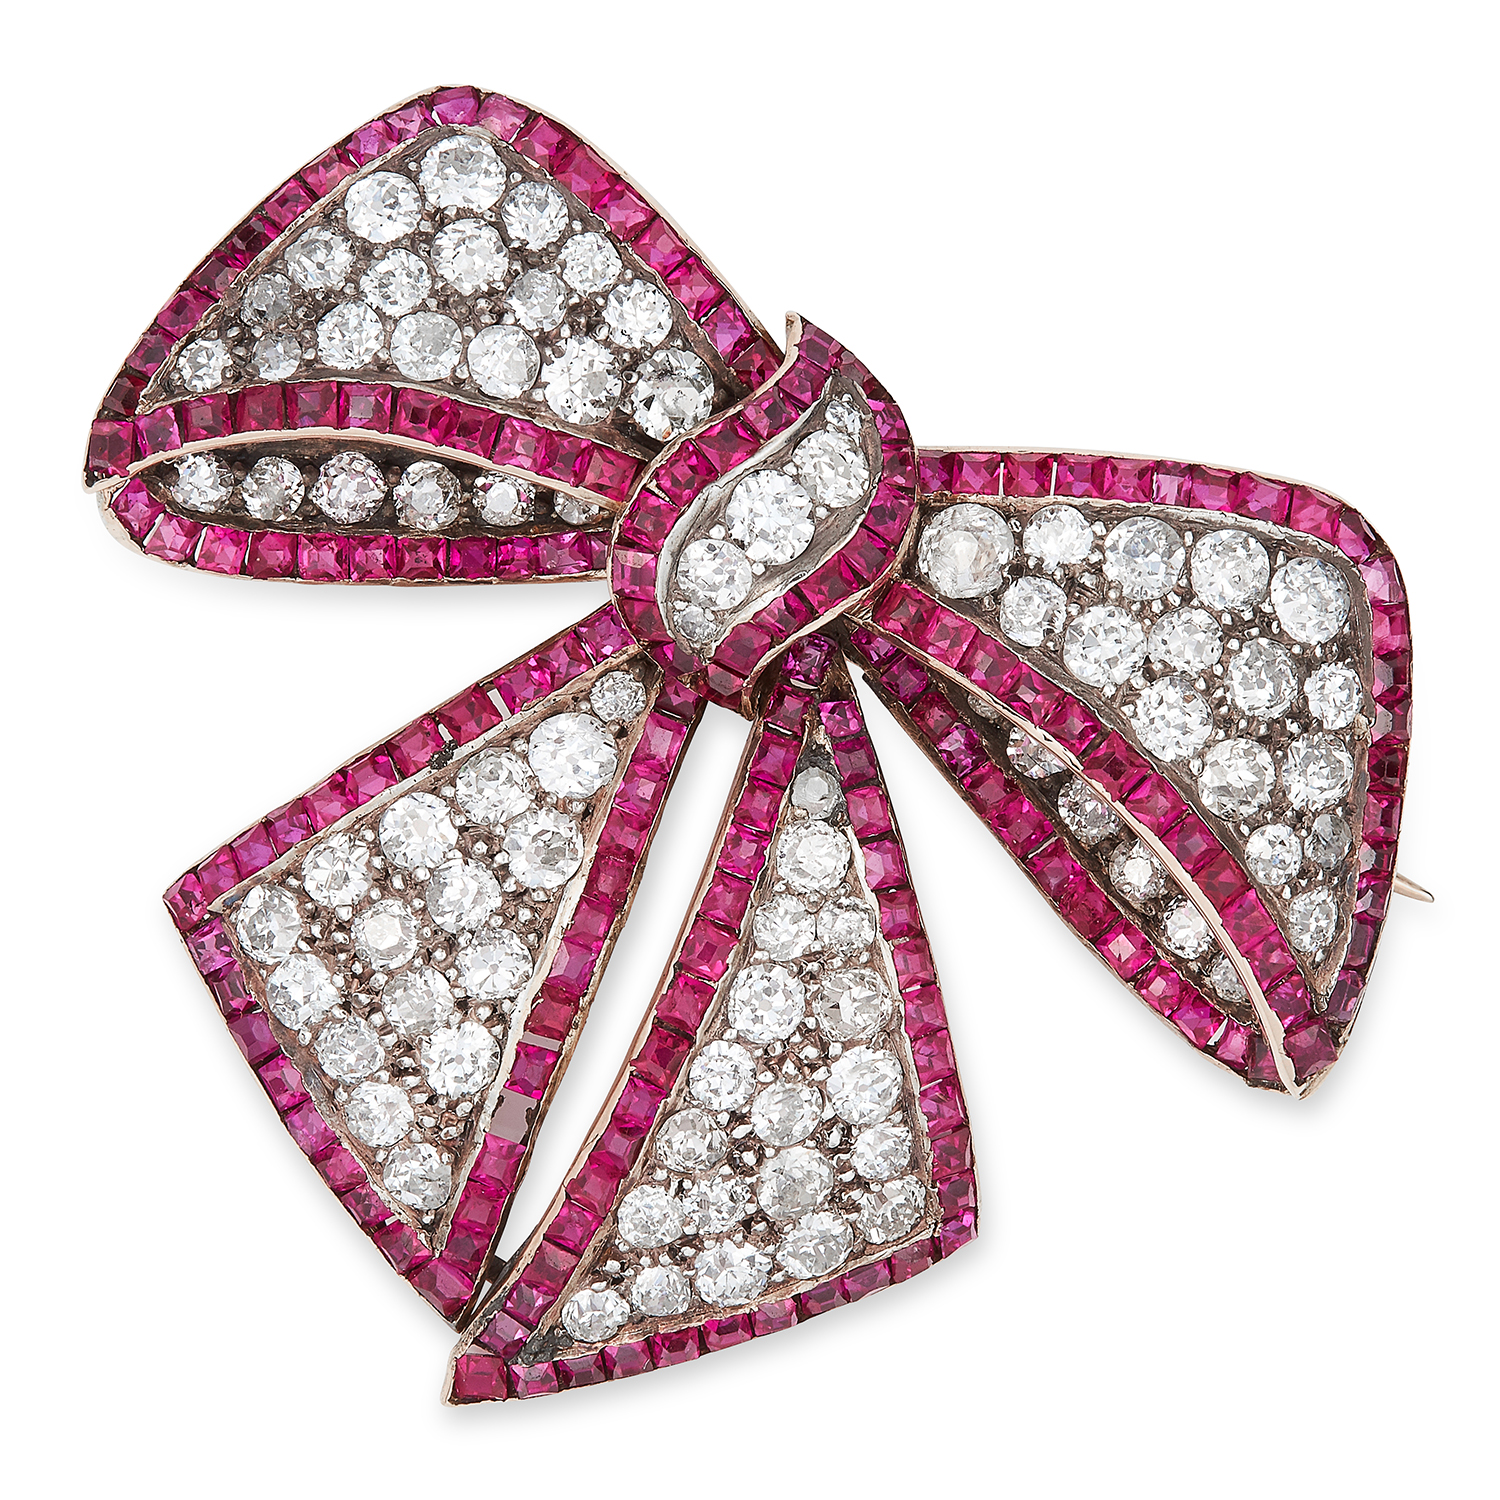 Los 55 - ANTIQUE DIAMOND AND RUBY BOW BROOCH, CIRCA 1900 set with old cut diamonds and step cut rubies,